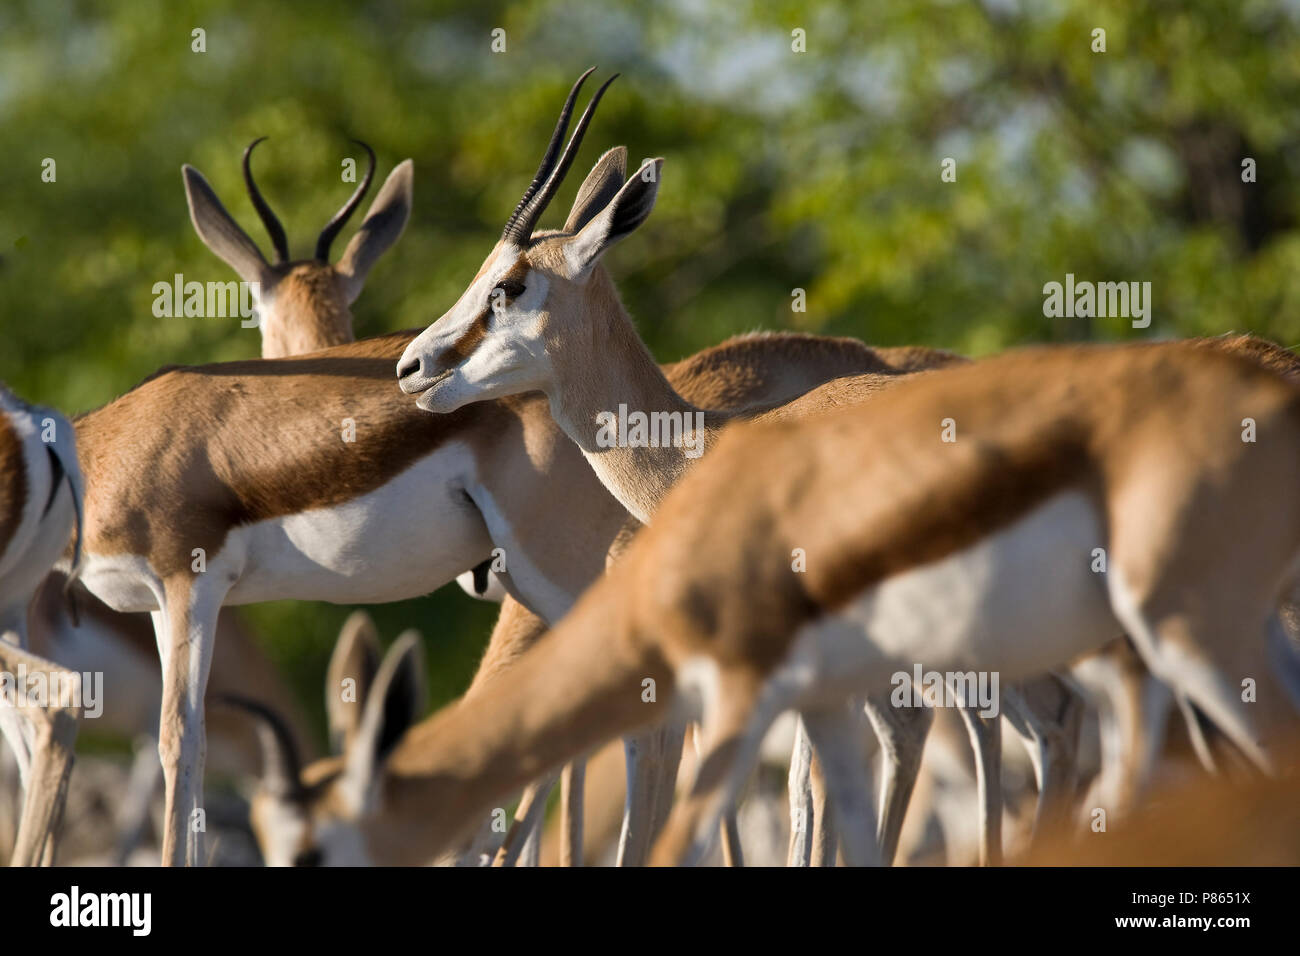 Closeup van kudde Springbokken, Close-up of herd of Springboks - Stock Image